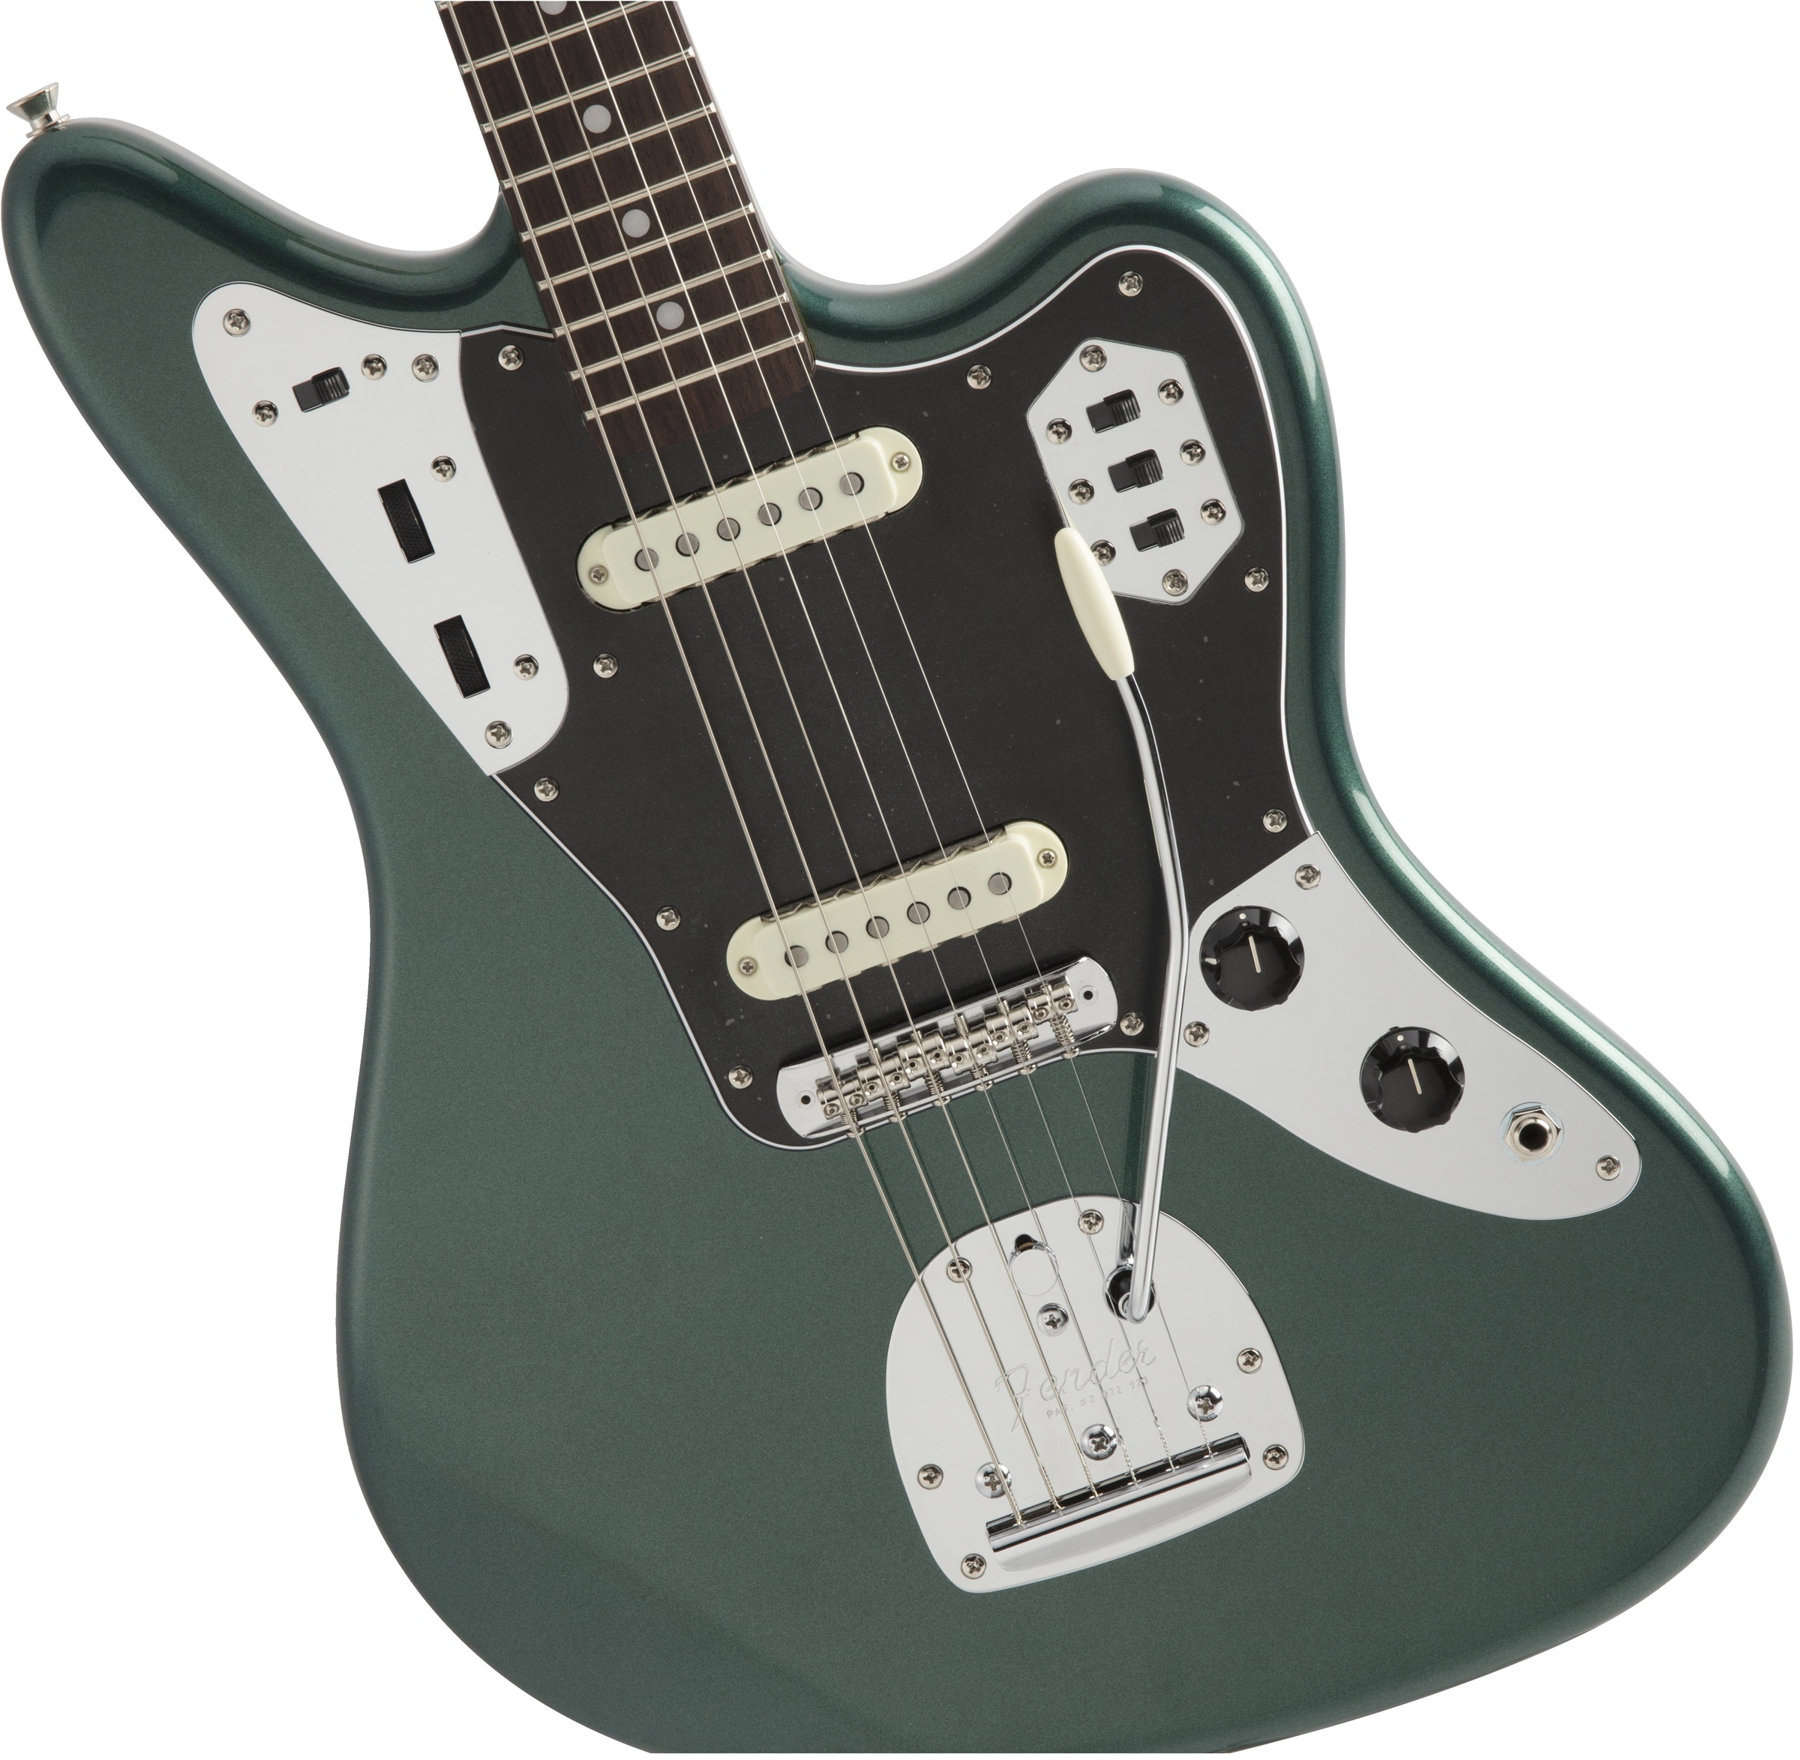 Made in Japan Hybrid 60s Jaguar Sherwood Green Metallic追加画像